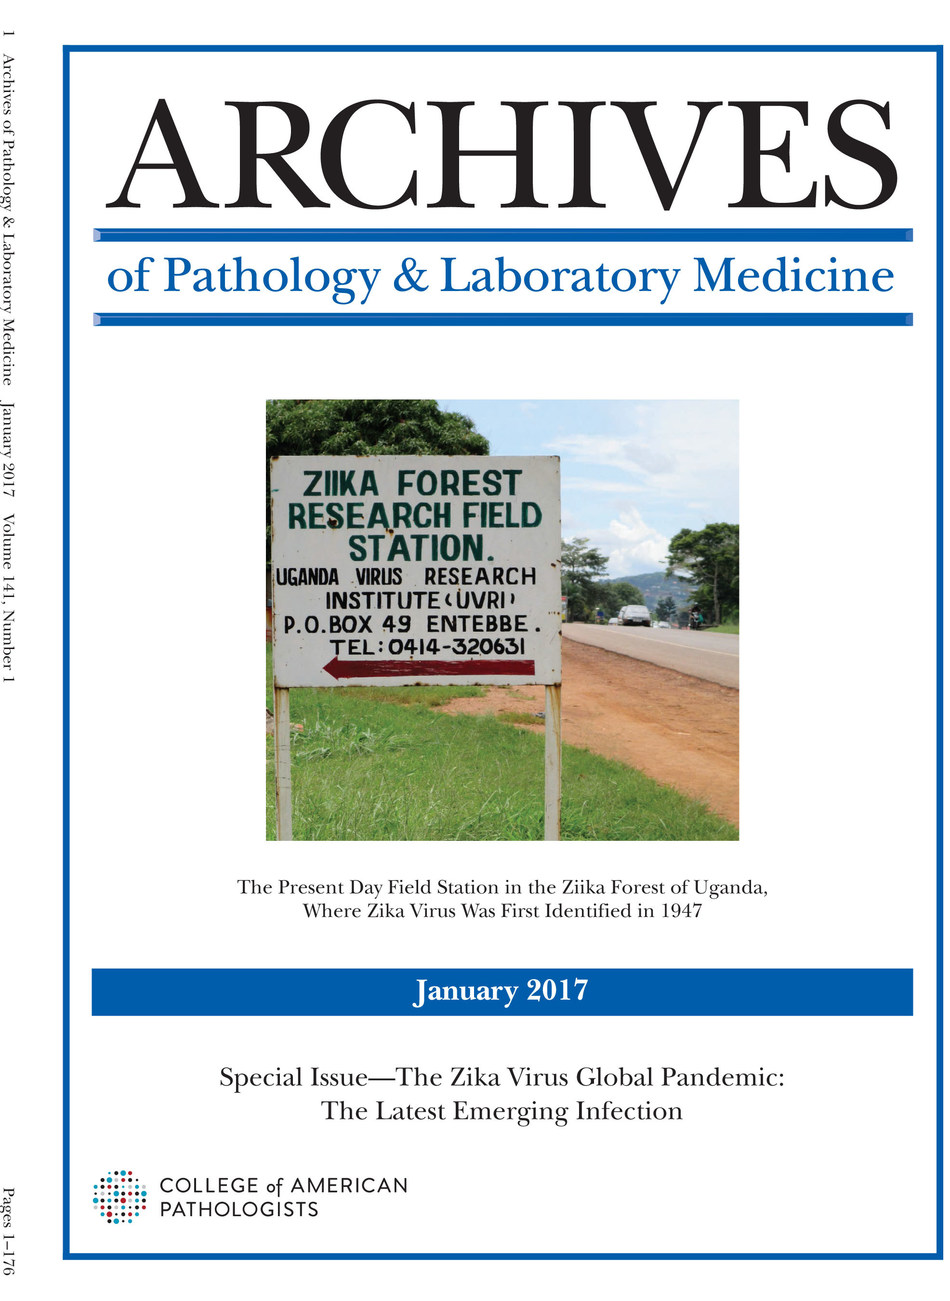 Cover of January 2017 Archives of Pathology & Laboratory Medicine, a special Zika virus issue.